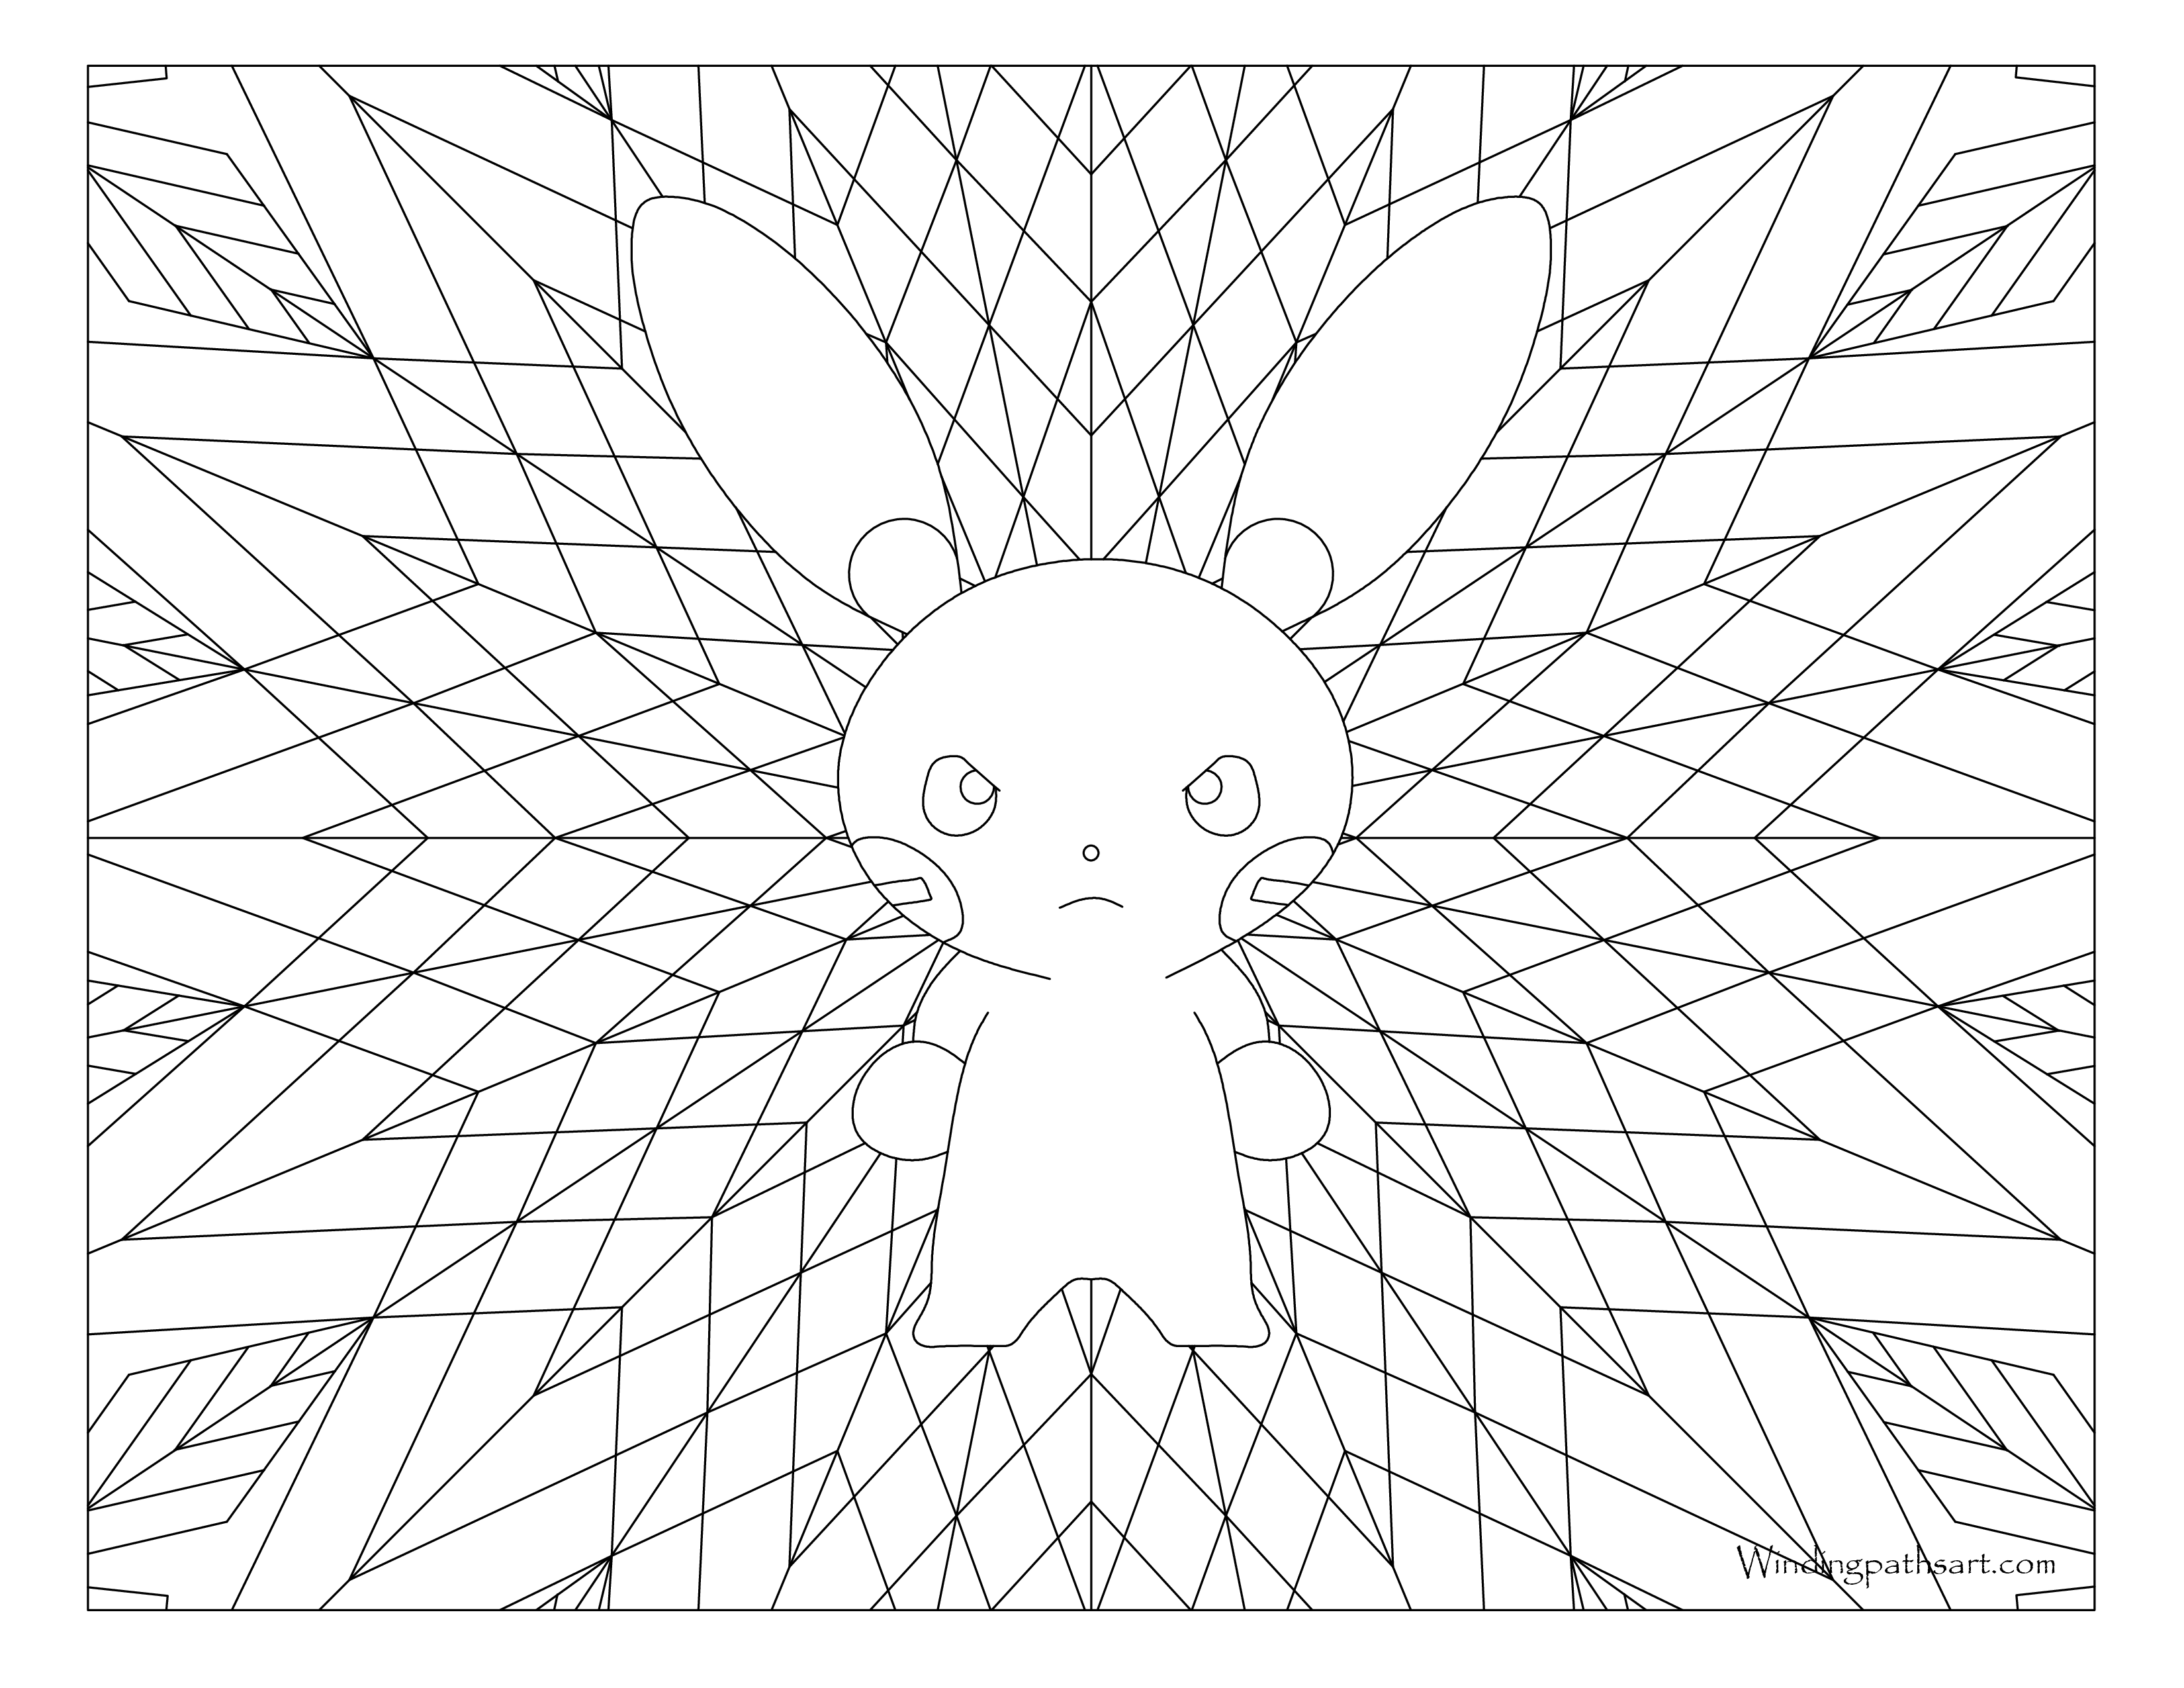 3300x2550 Minun Pokemon Coloring Page